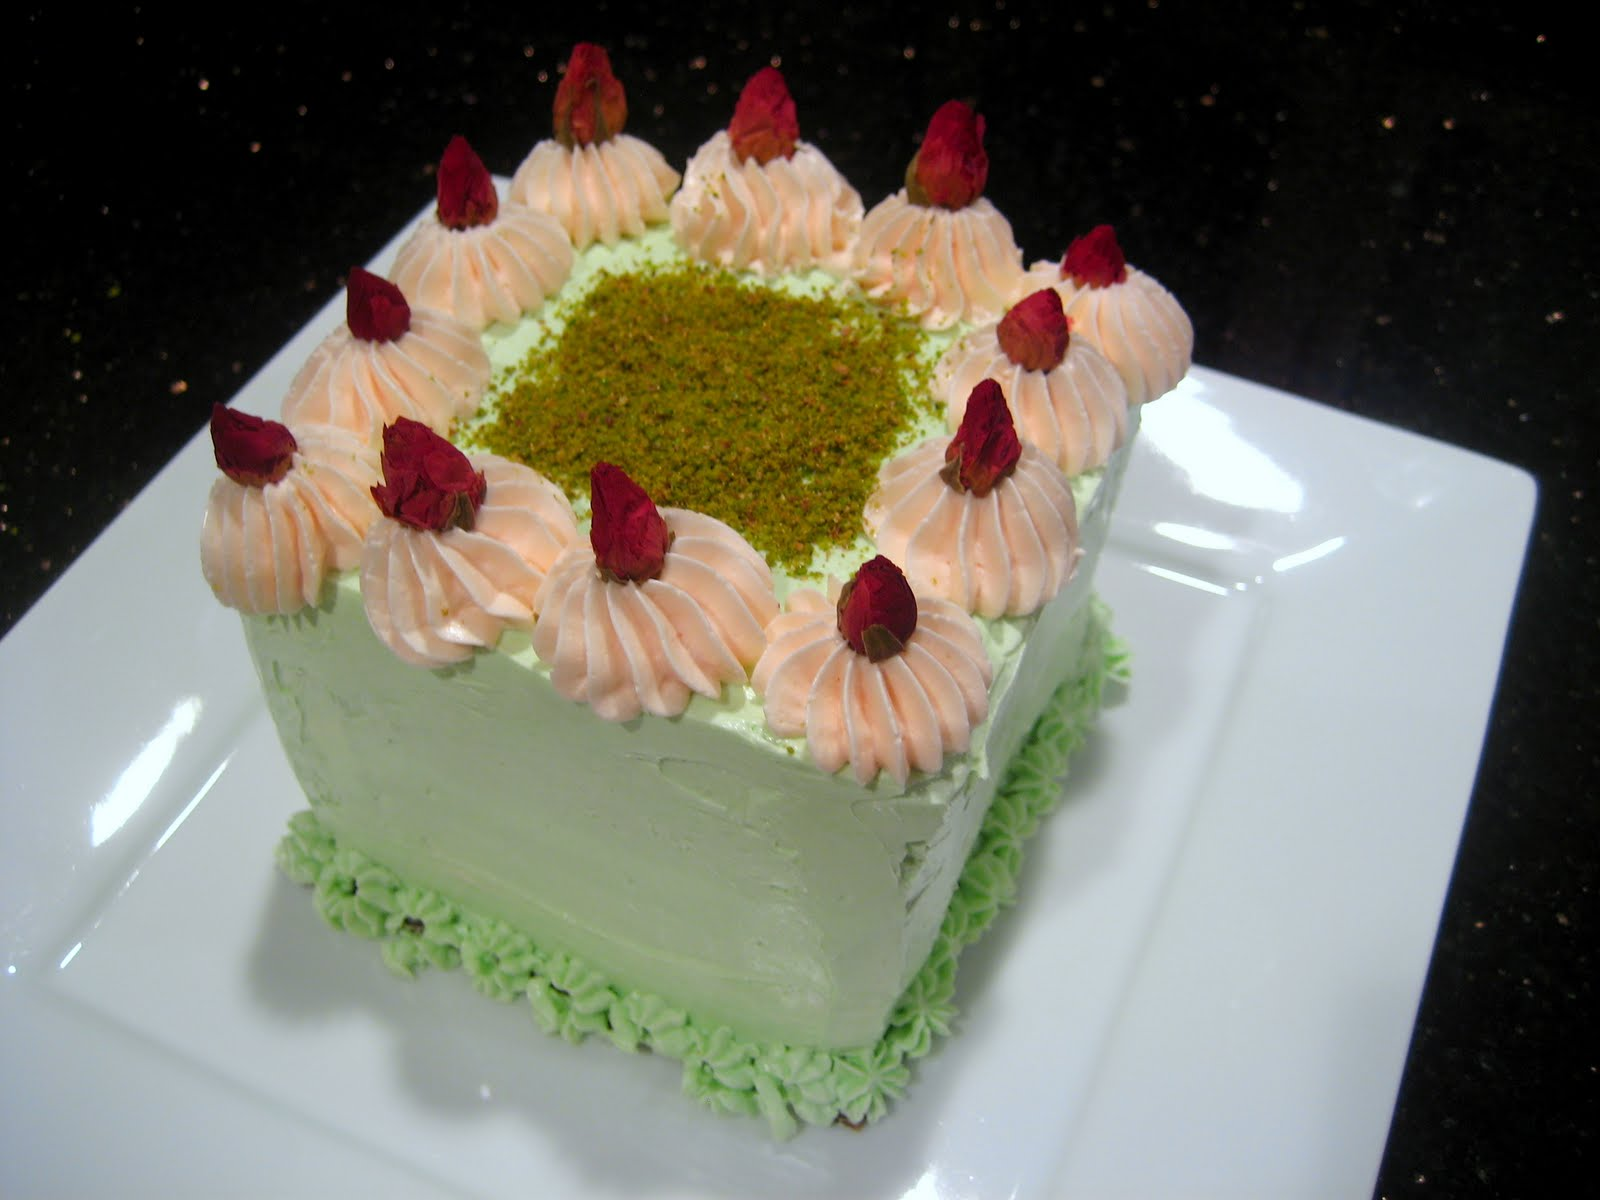 Goodnight Rose: Pistachio-Cardamom Cake with Rosewater Frosting